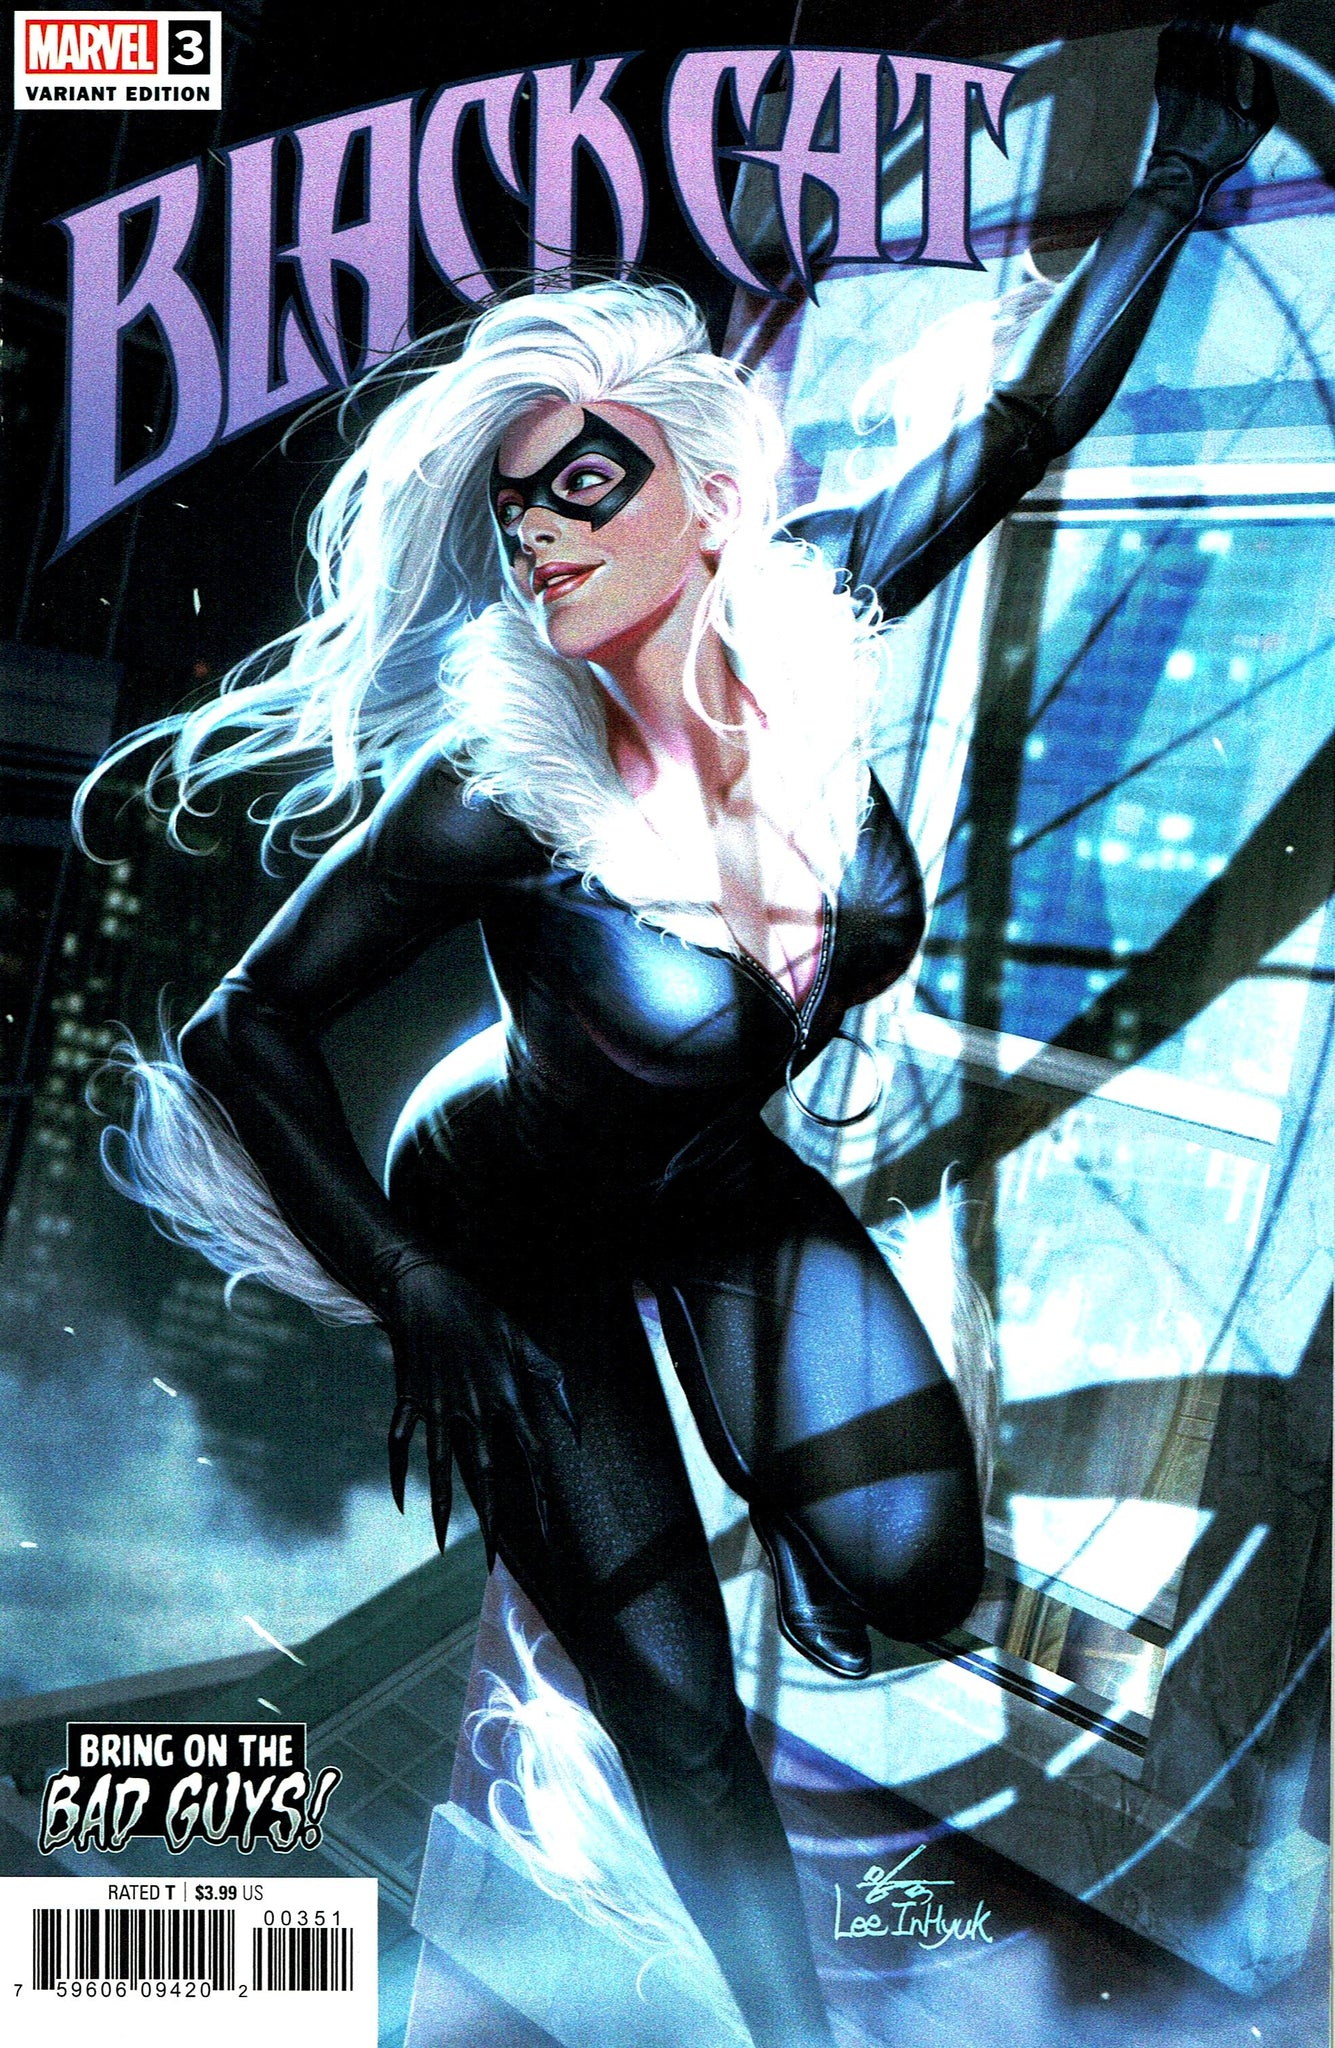 Black Cat (2019) #03 In-Hyuk Lee Bring on the Bad Guys! Cover